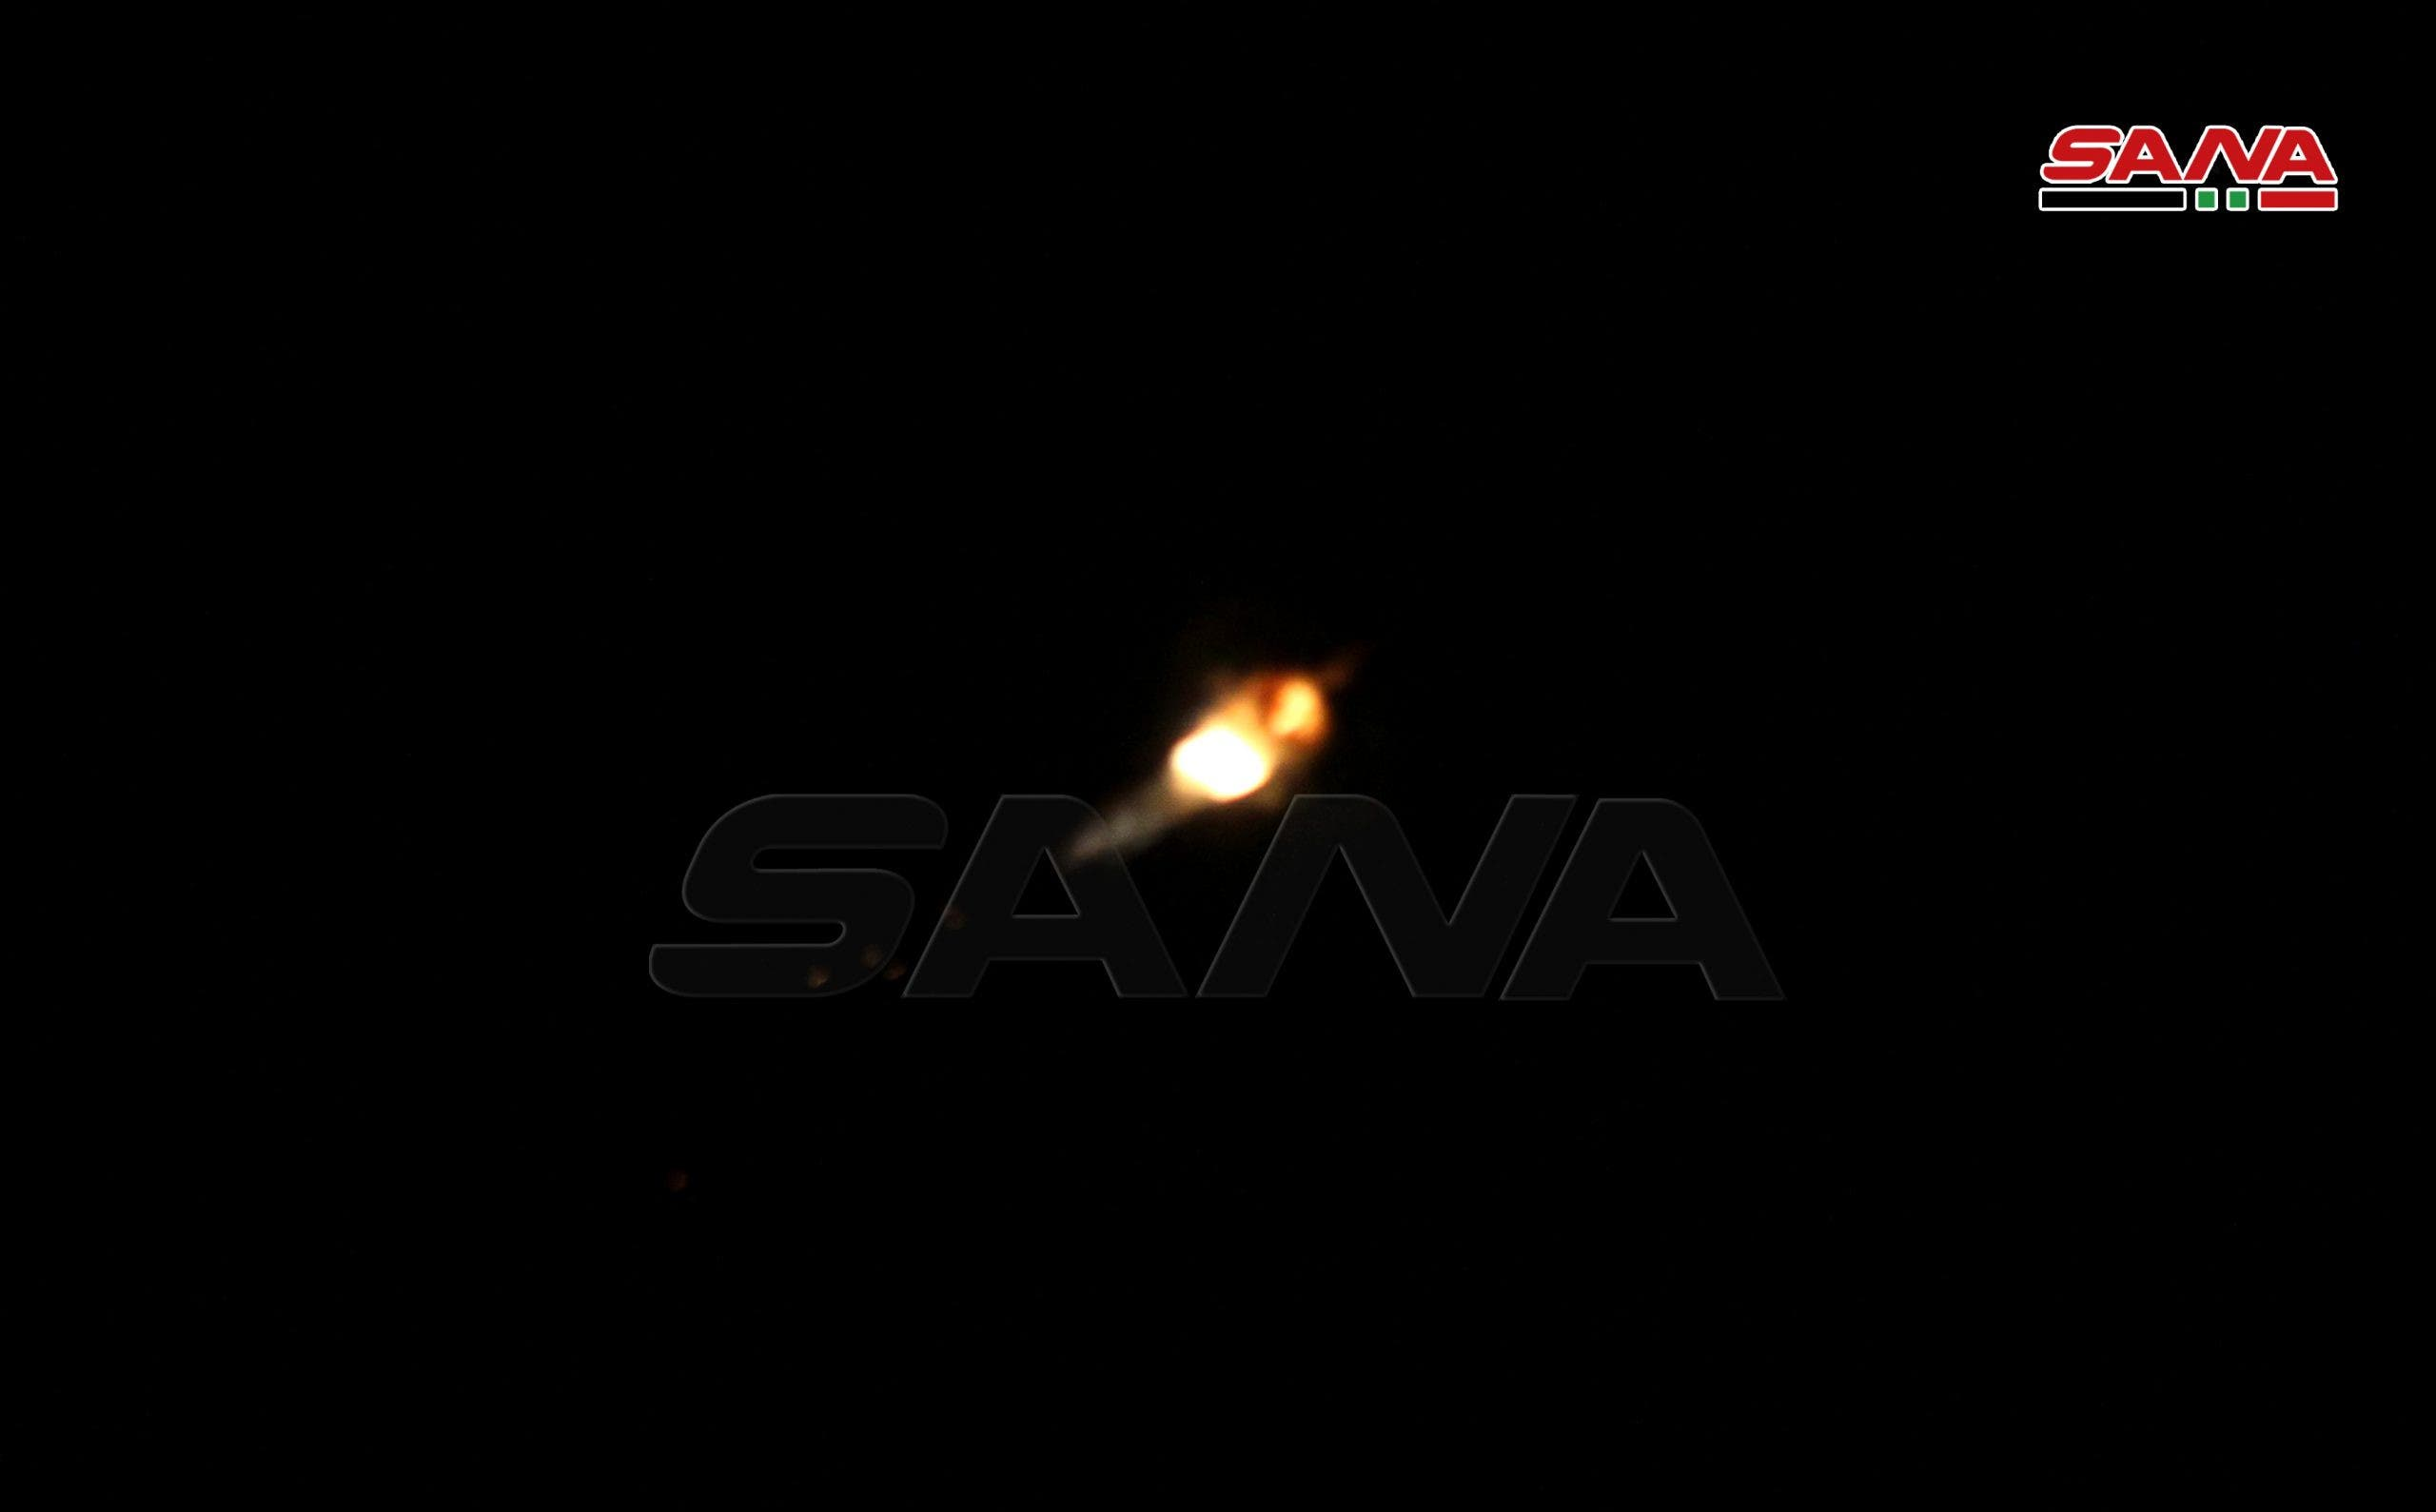 SANA - Israeli airstrike on Damascus